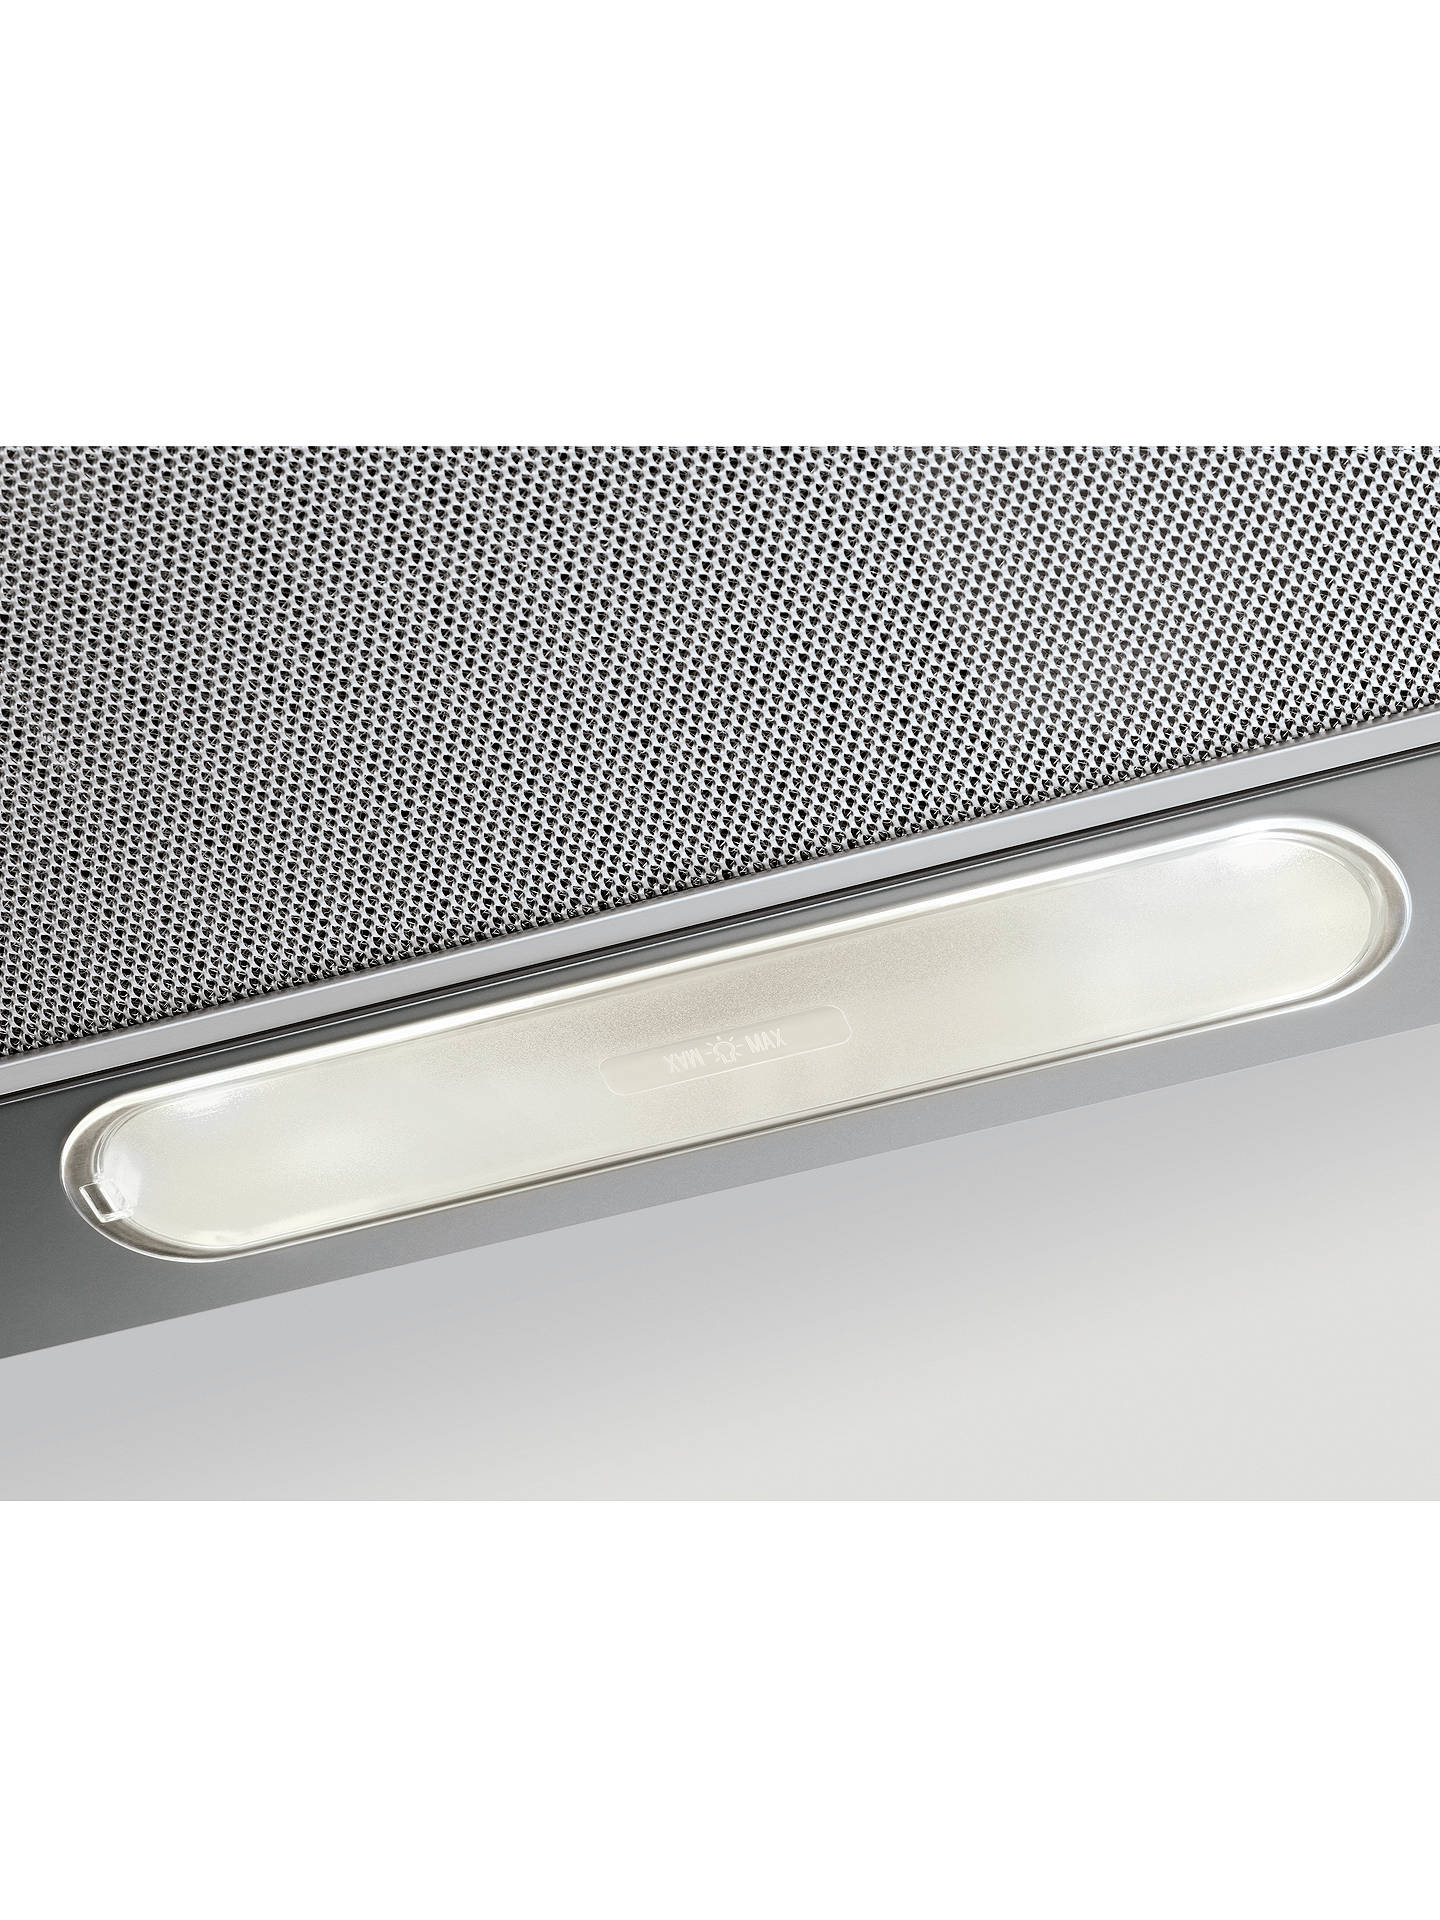 BuyAEG DPB2920M Built-In Telescopic Cooker Hood, Stainless Steel Online at johnlewis.com